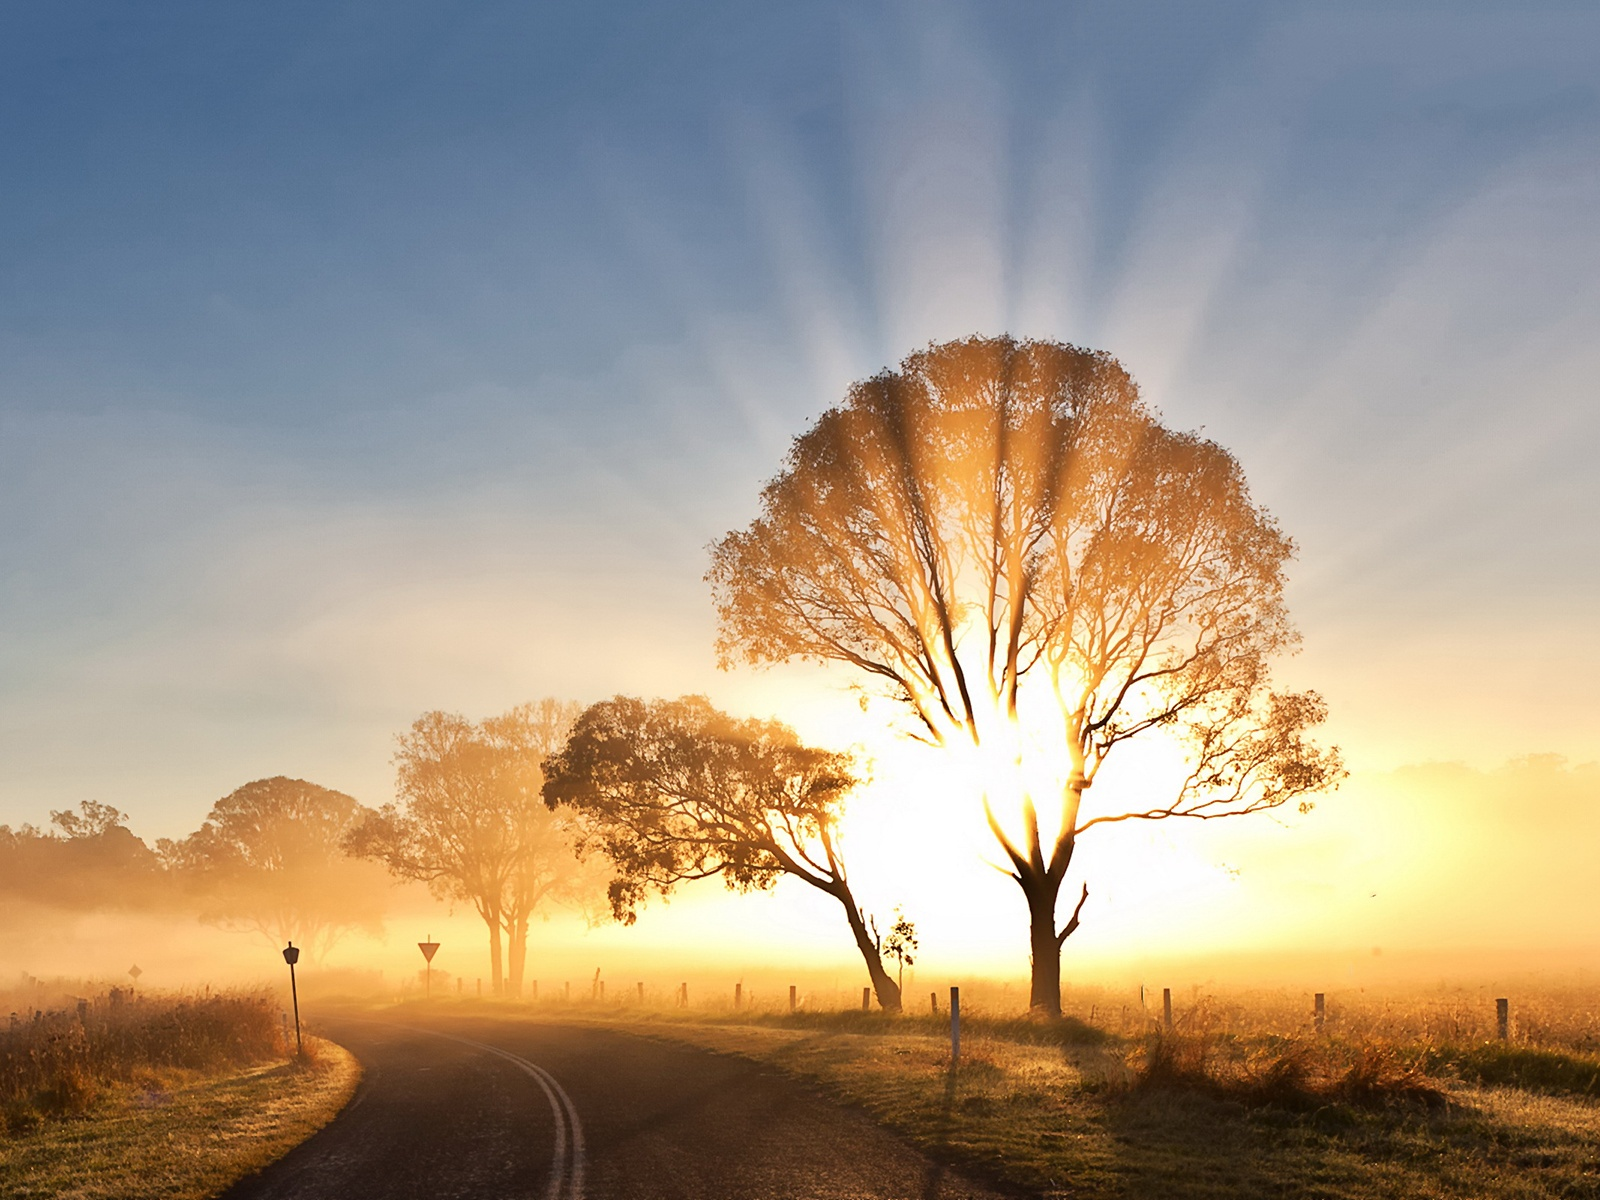 Amazing 46 Wallpapers of Morning Mist, Top Morning Mist Collection